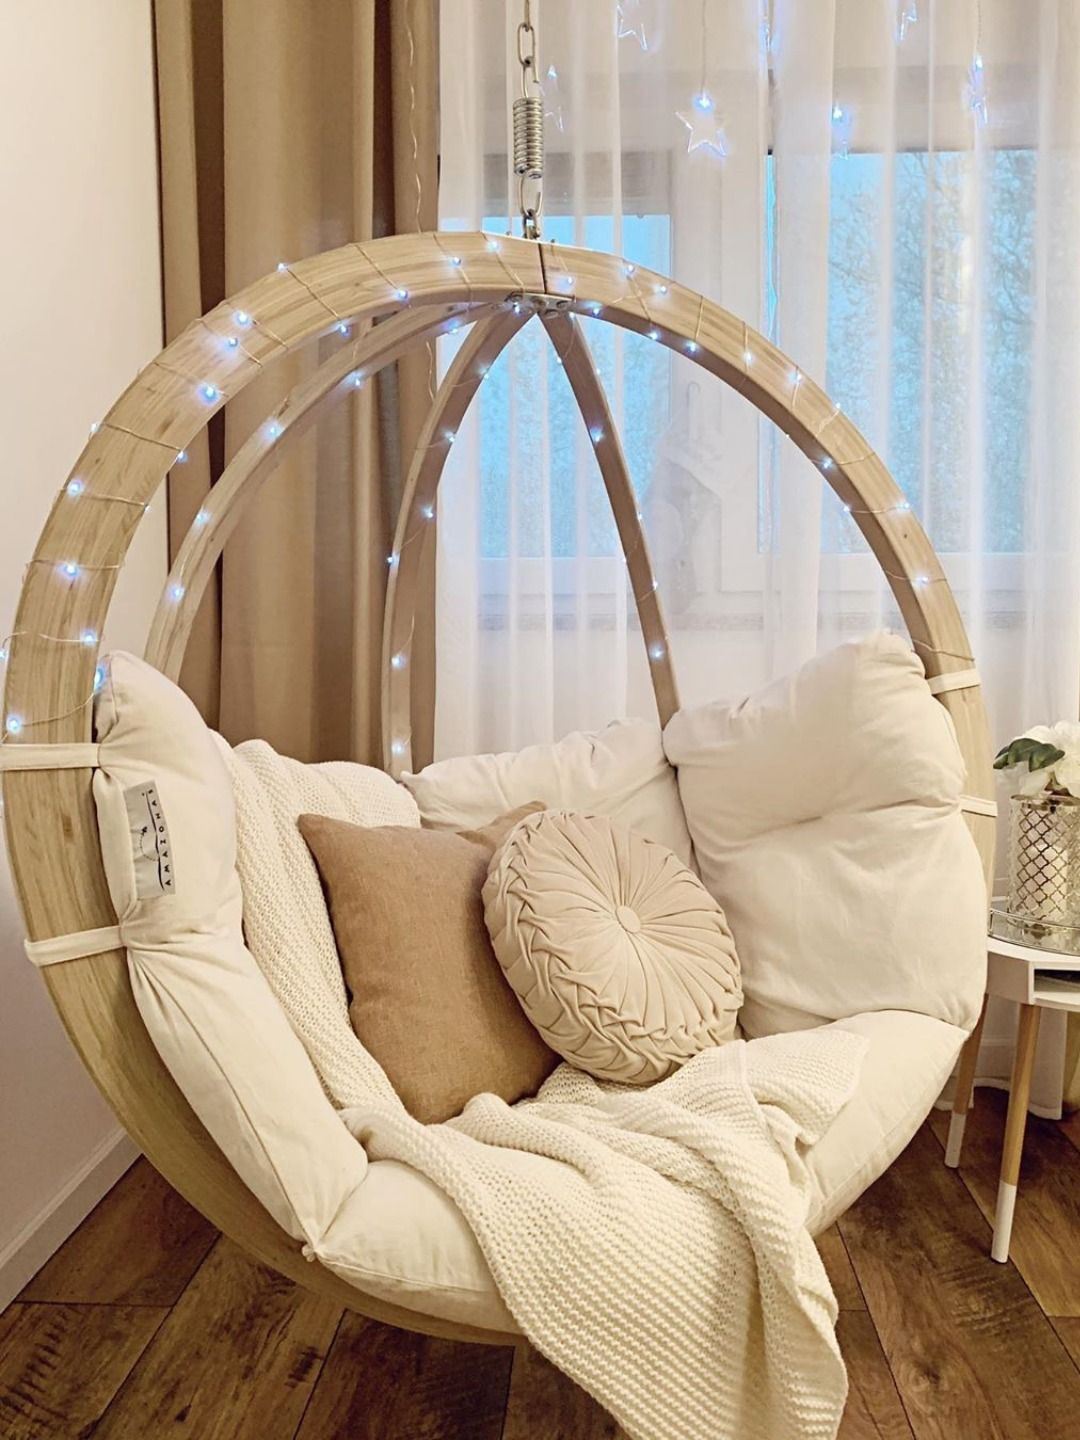 Globo Hanging Chair Room Hammock Hanging Chair Indoor Swing Chair Bedroom